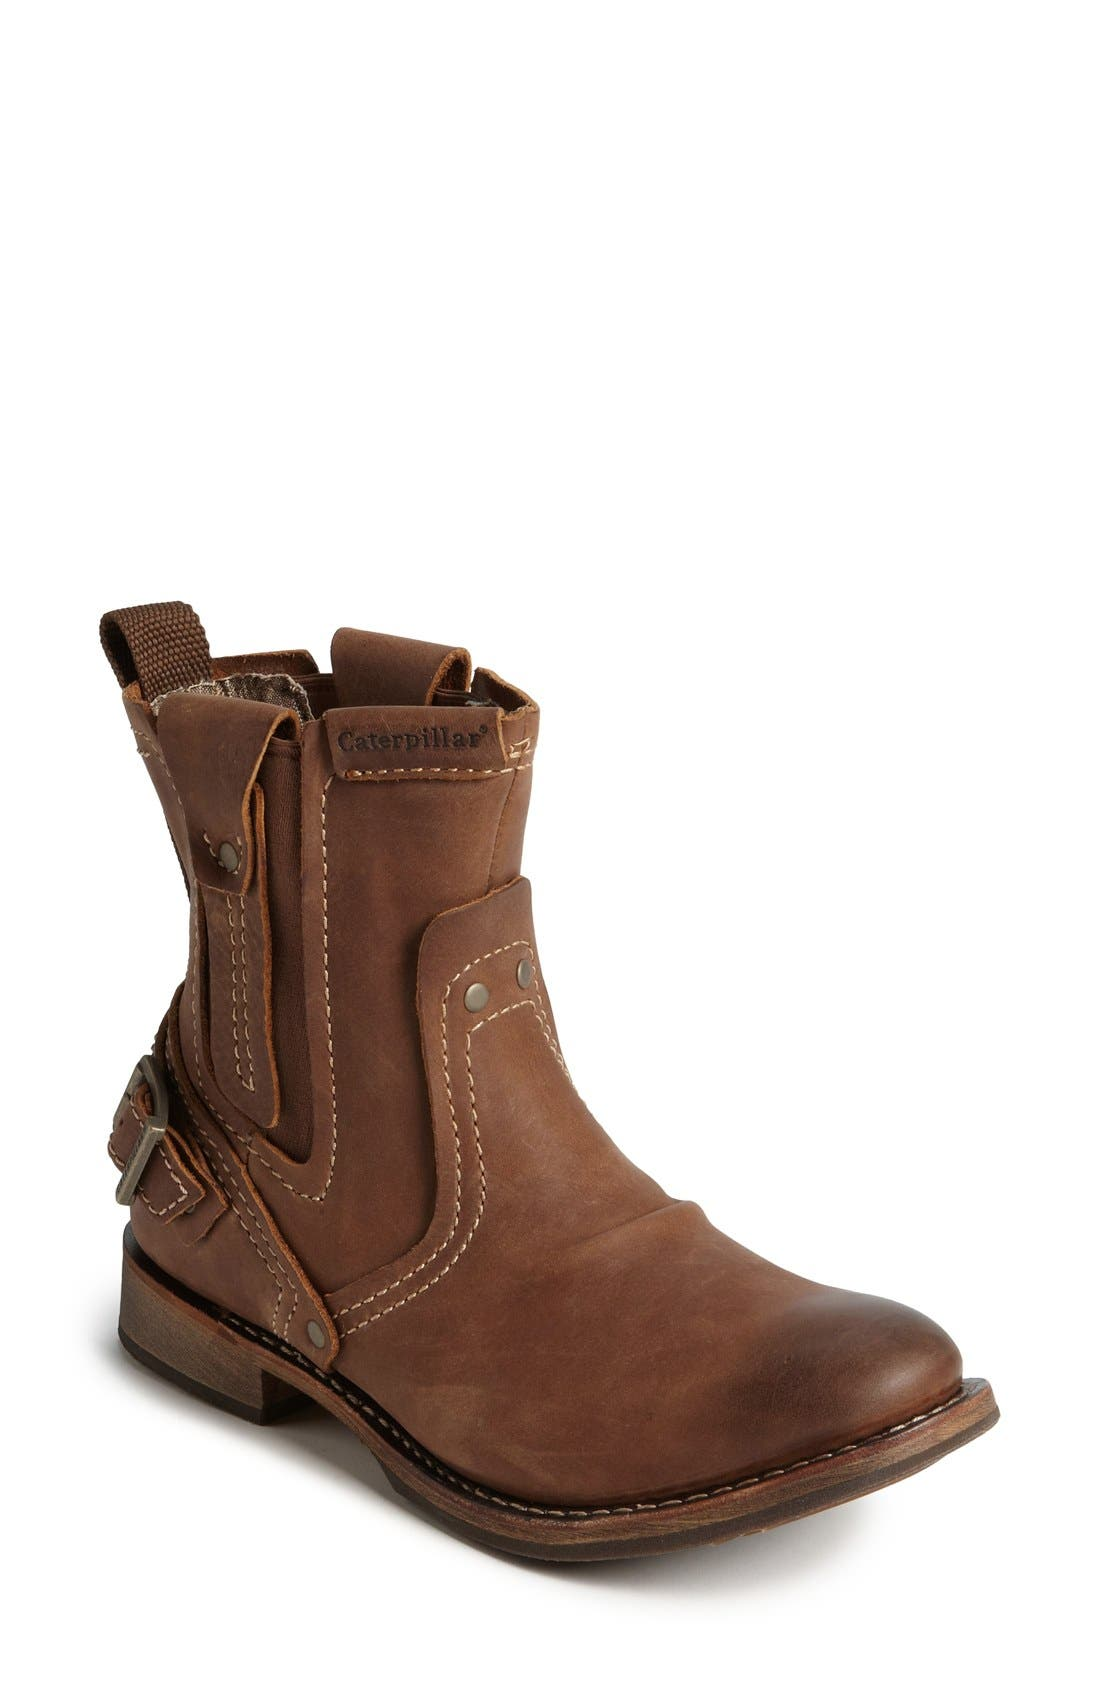 Alternate Image 1 Selected - Caterpillar 'Vinson' Boot (Men)